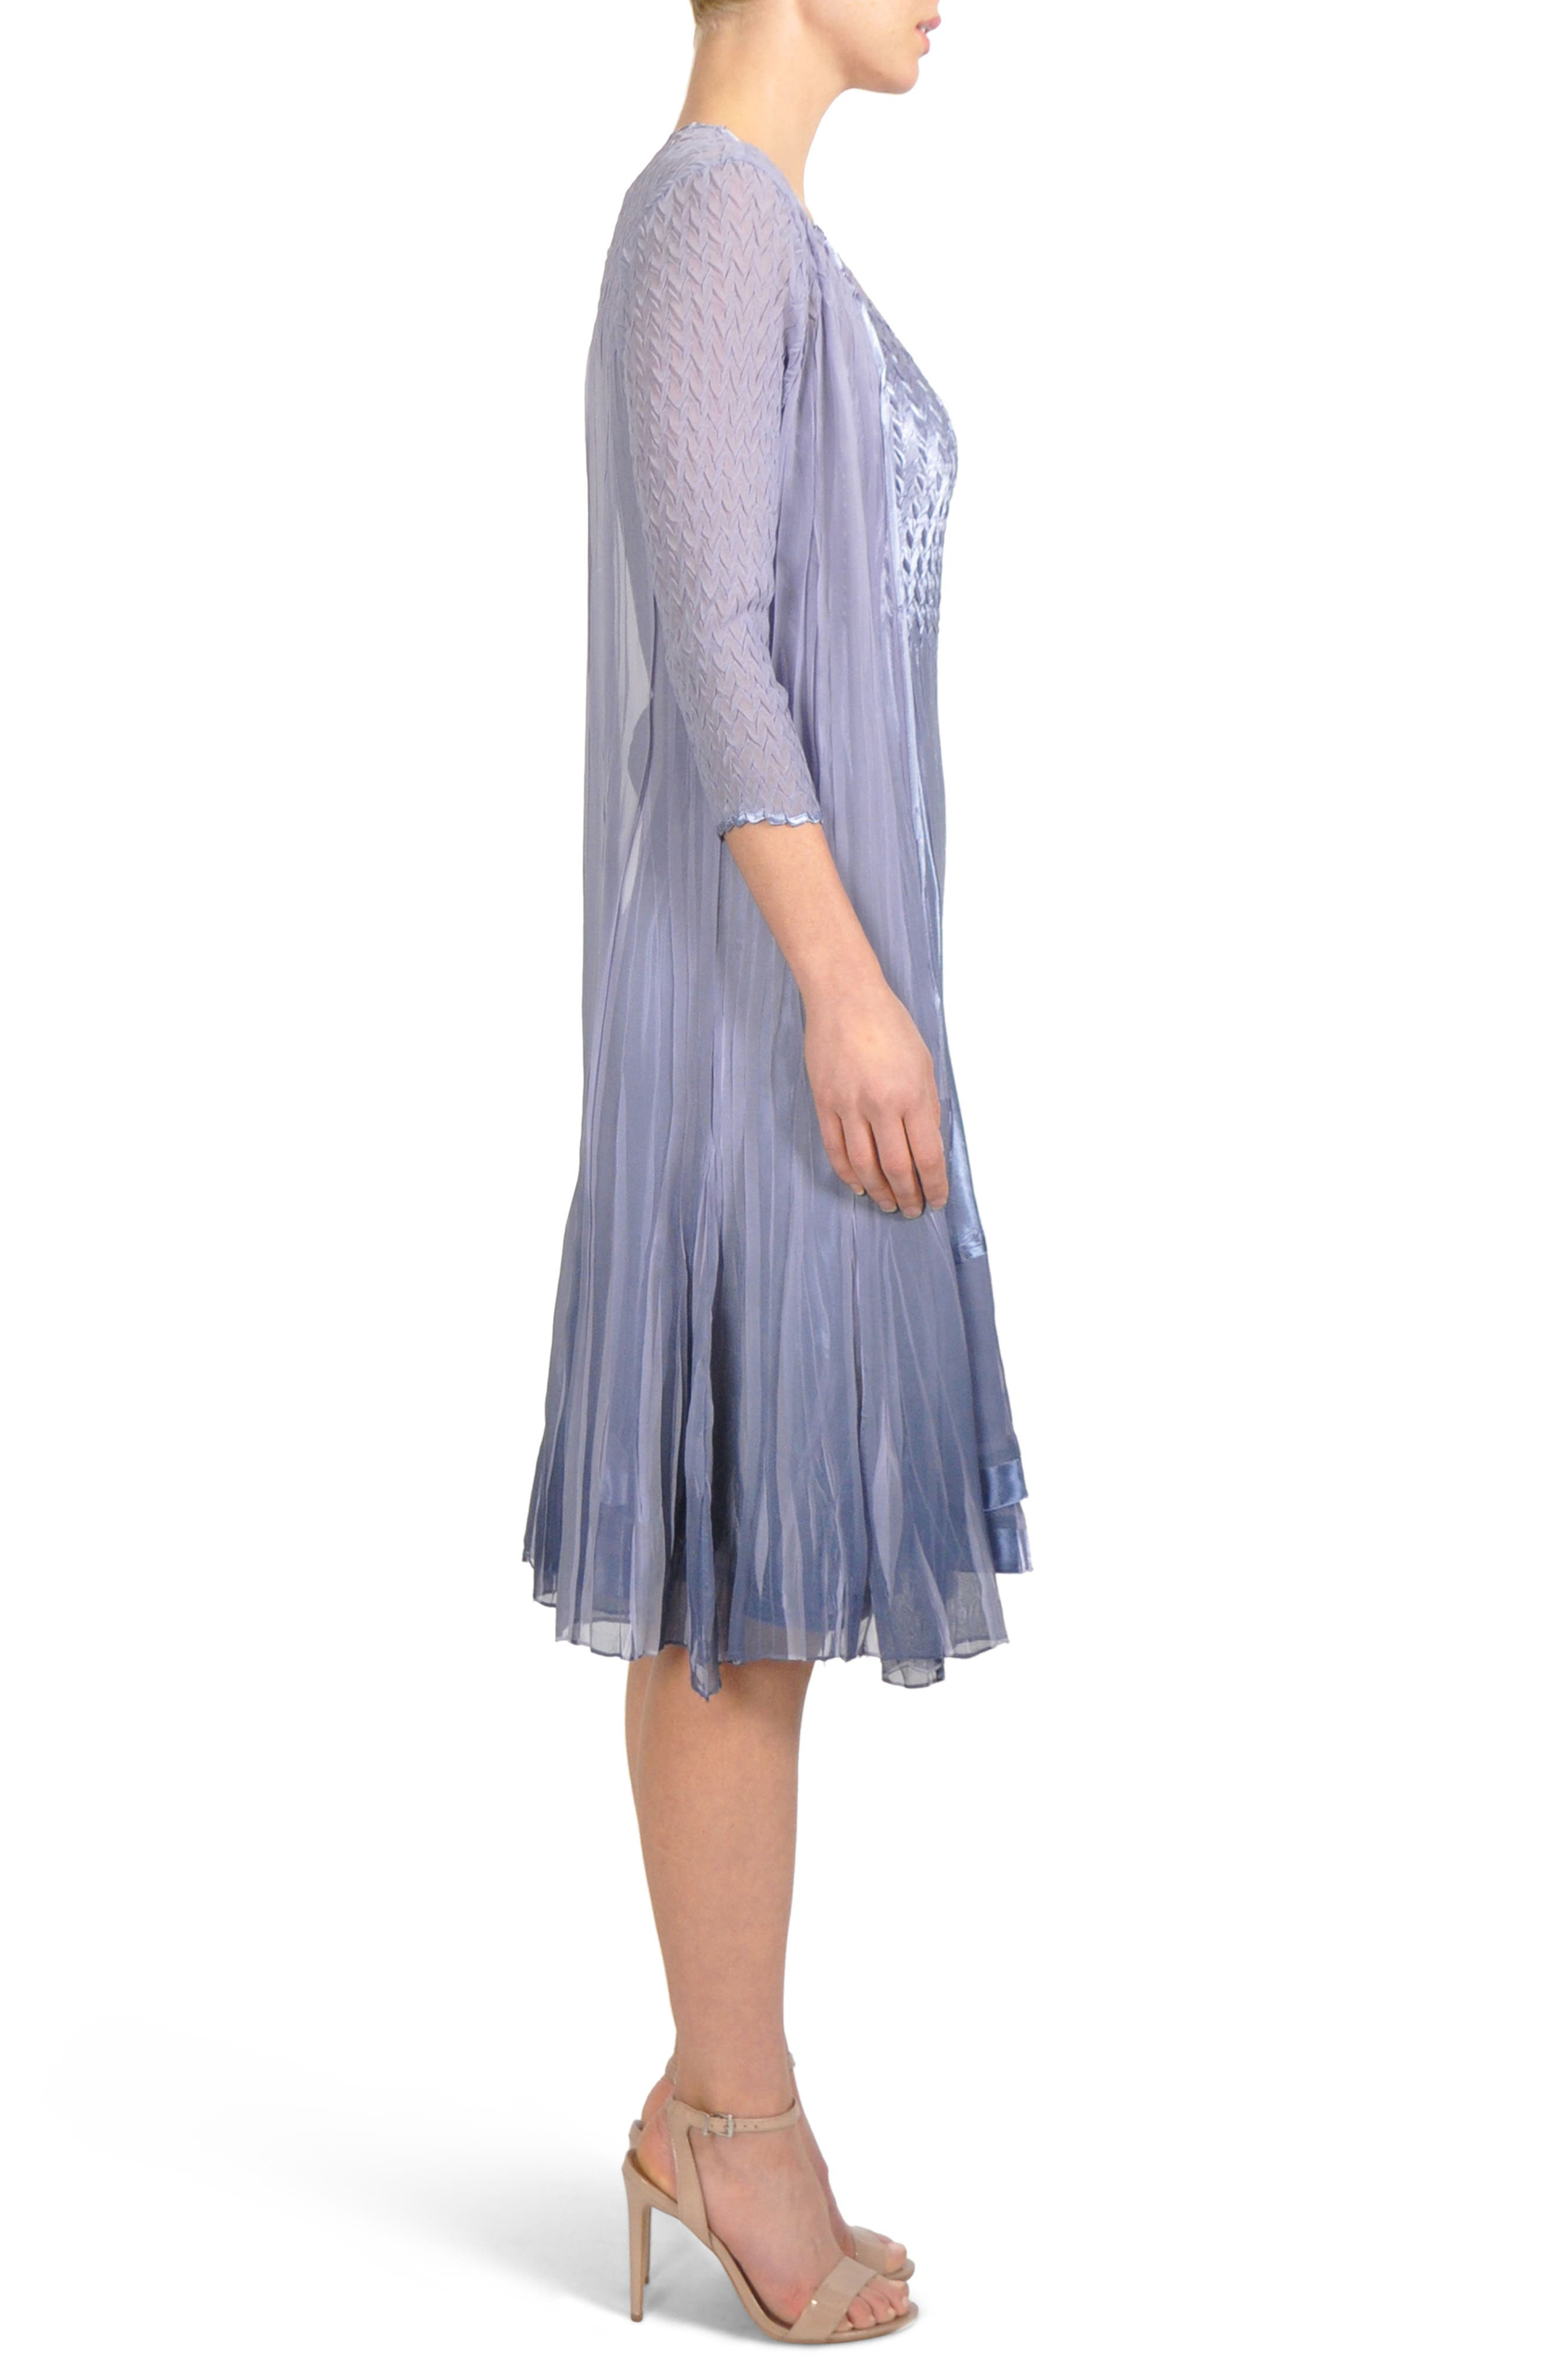 Charmeuse & Chiffon Midi Dress with Jacket,                             Alternate thumbnail 5, color,                             Lavendar Grey Blue Ombre